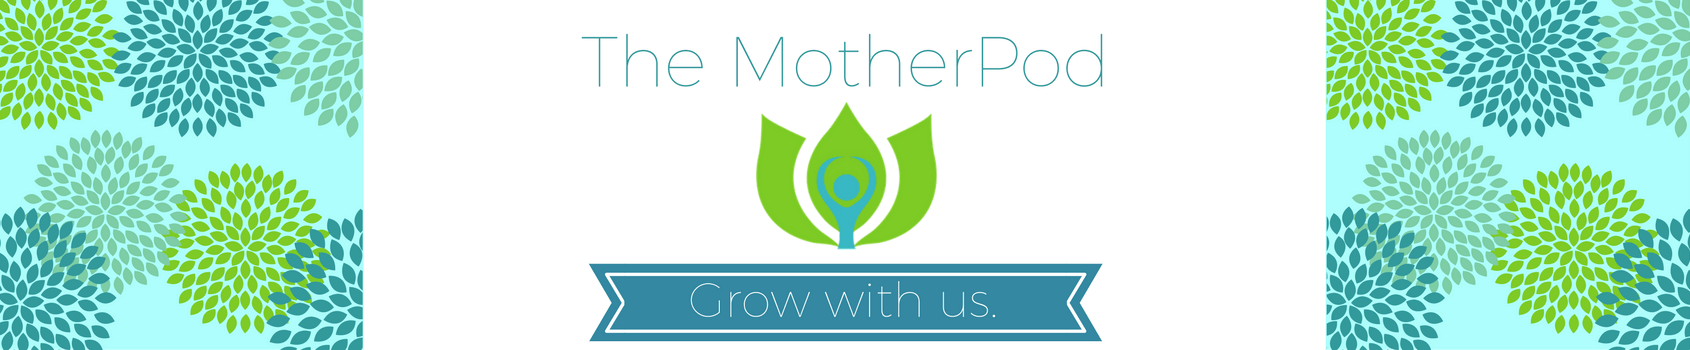 Introducing: The MotherPod!